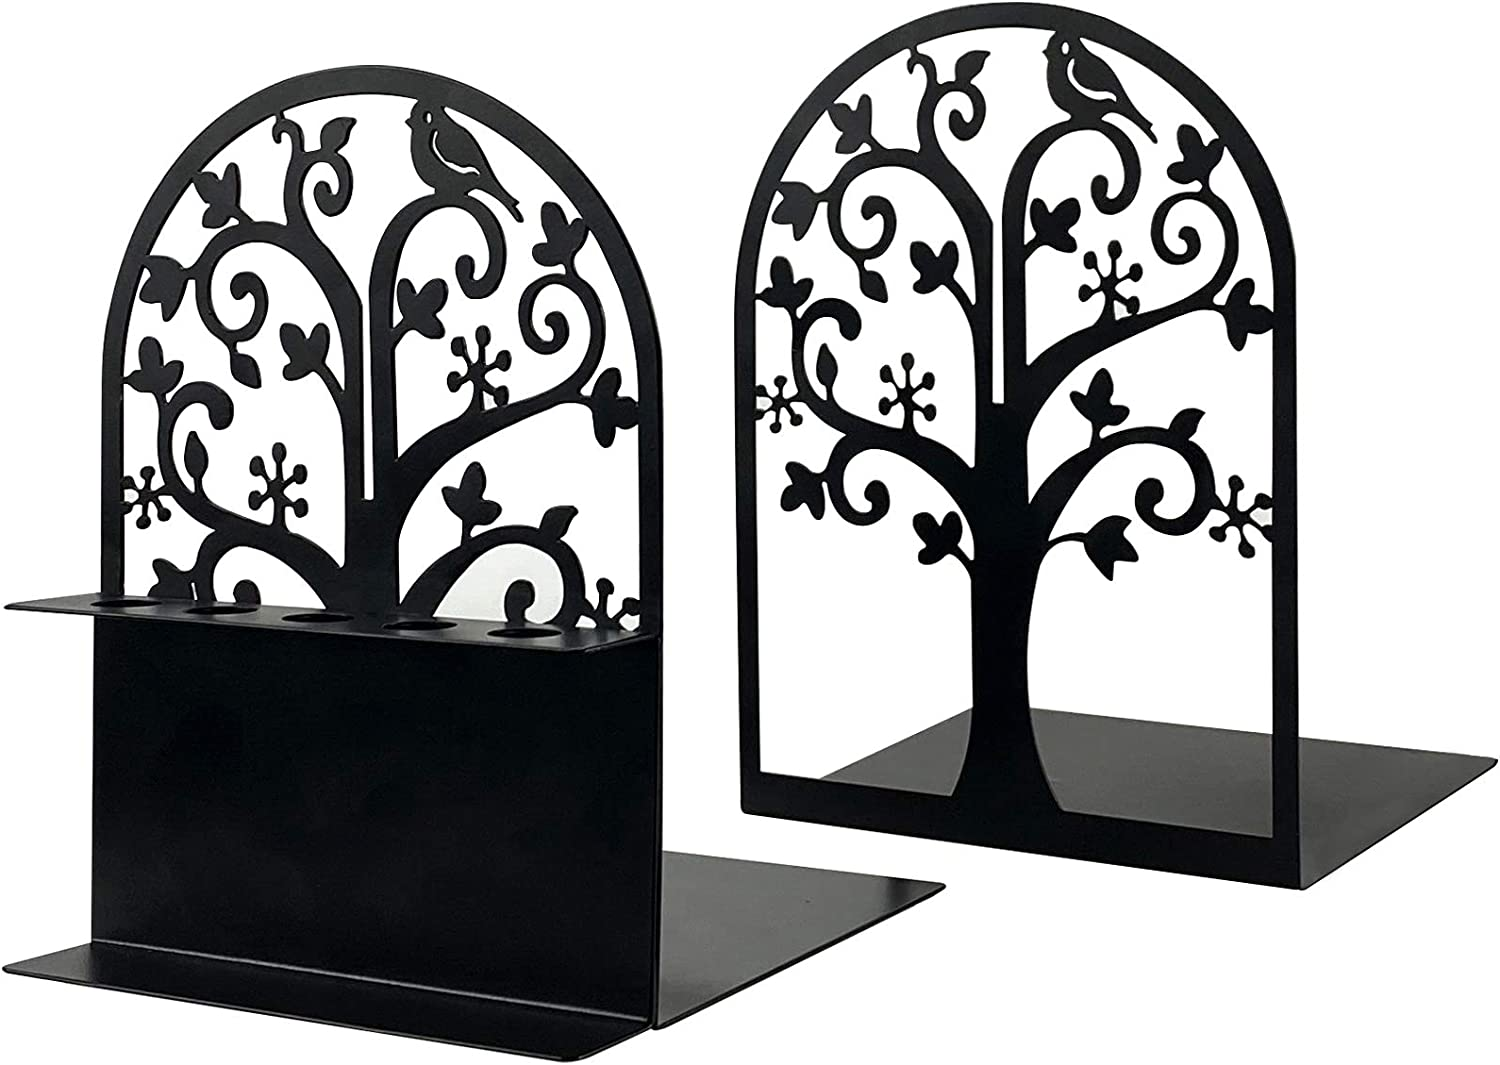 Urban Deco Special Campaign Book Ends Metal 2021 spring and summer new for Shelves Suppo Bookend